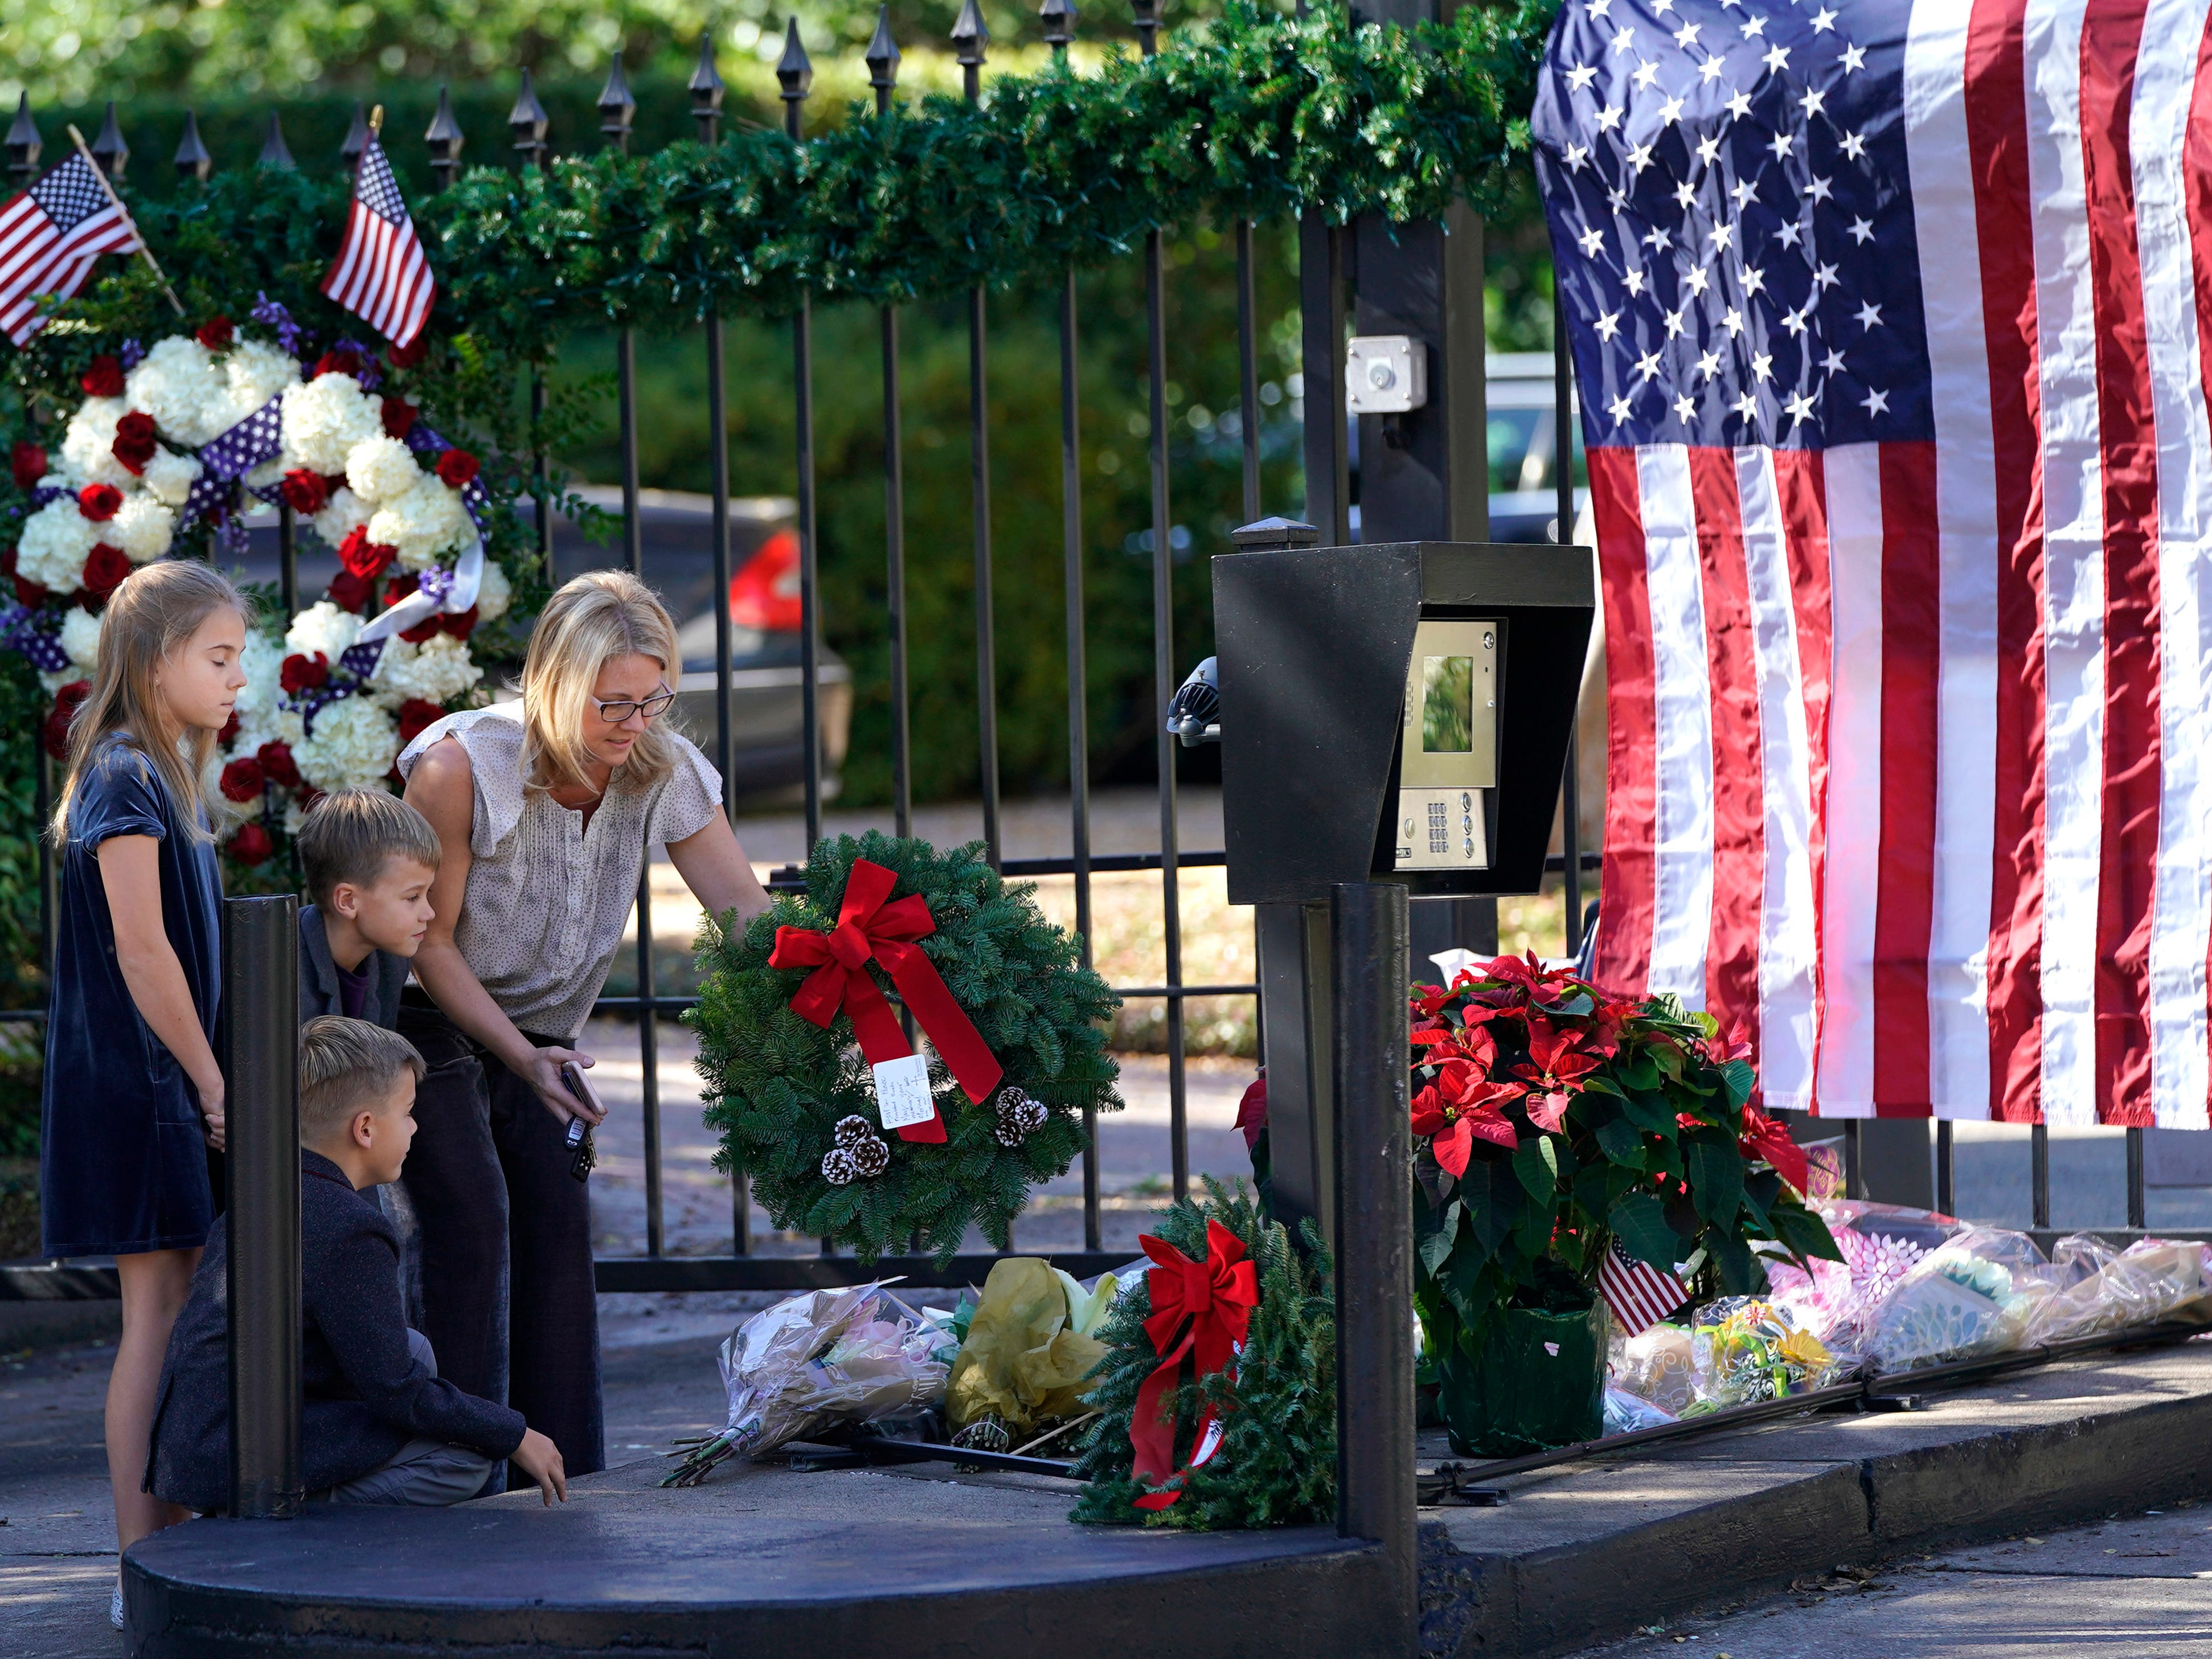 Tiffany Utterson, right, and her children, from left to right, Ella, 11, Ian, 10 and Owen, 8, place a wreath outside the gated community entrance to the home of George H.W. Bush Sunday, Dec. 2, 2018, in Houston.